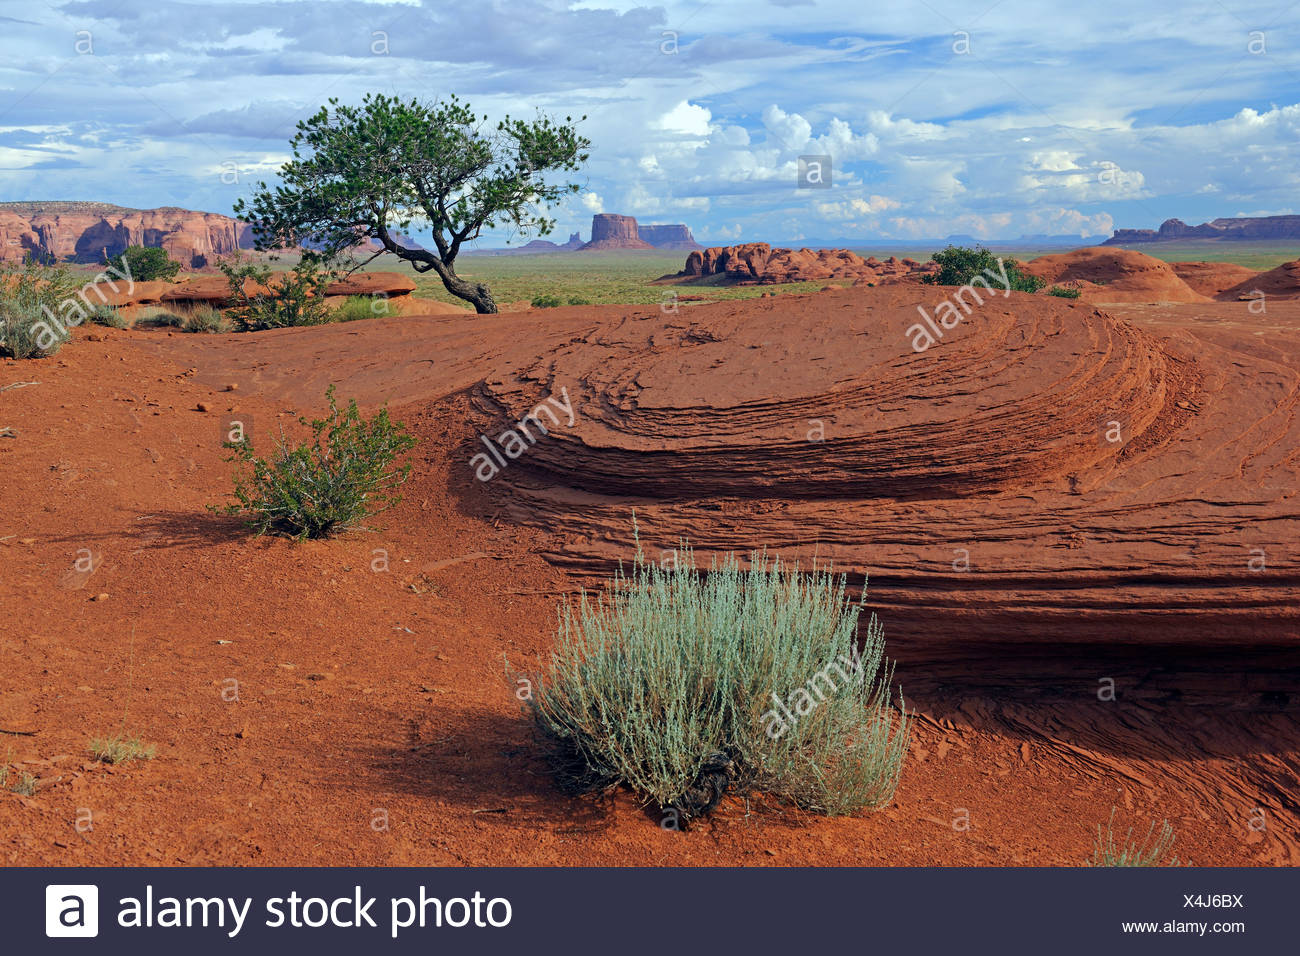 Typical landscape of red sandstone in Mystery Valley, Arizona, USA - Stock Image